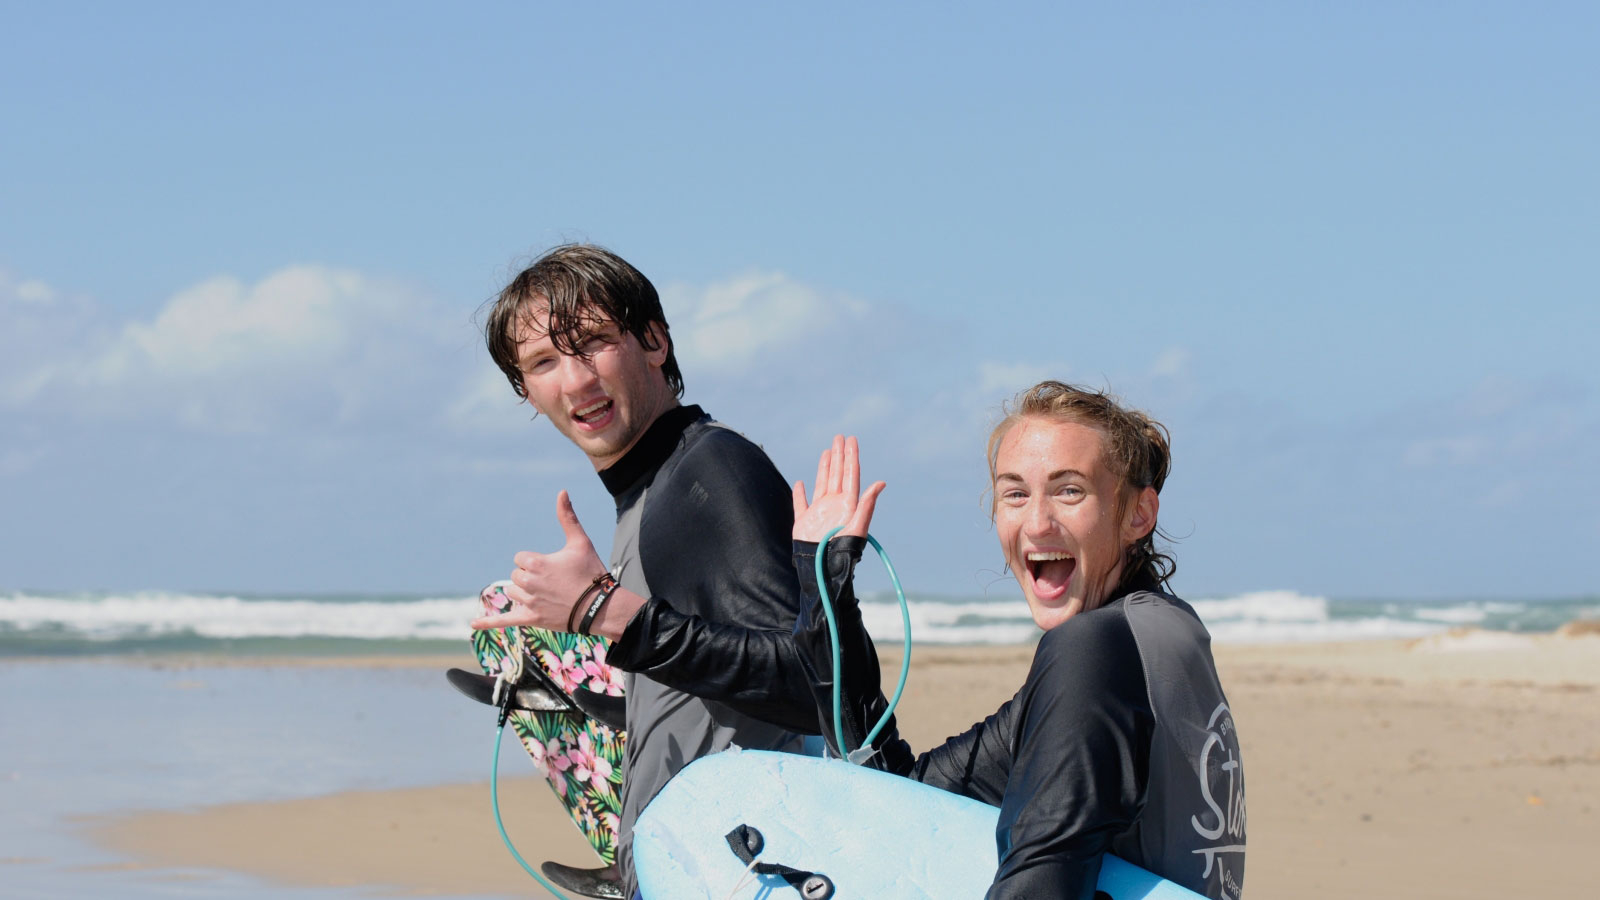 a fredonia student goes surfing while studying abroad